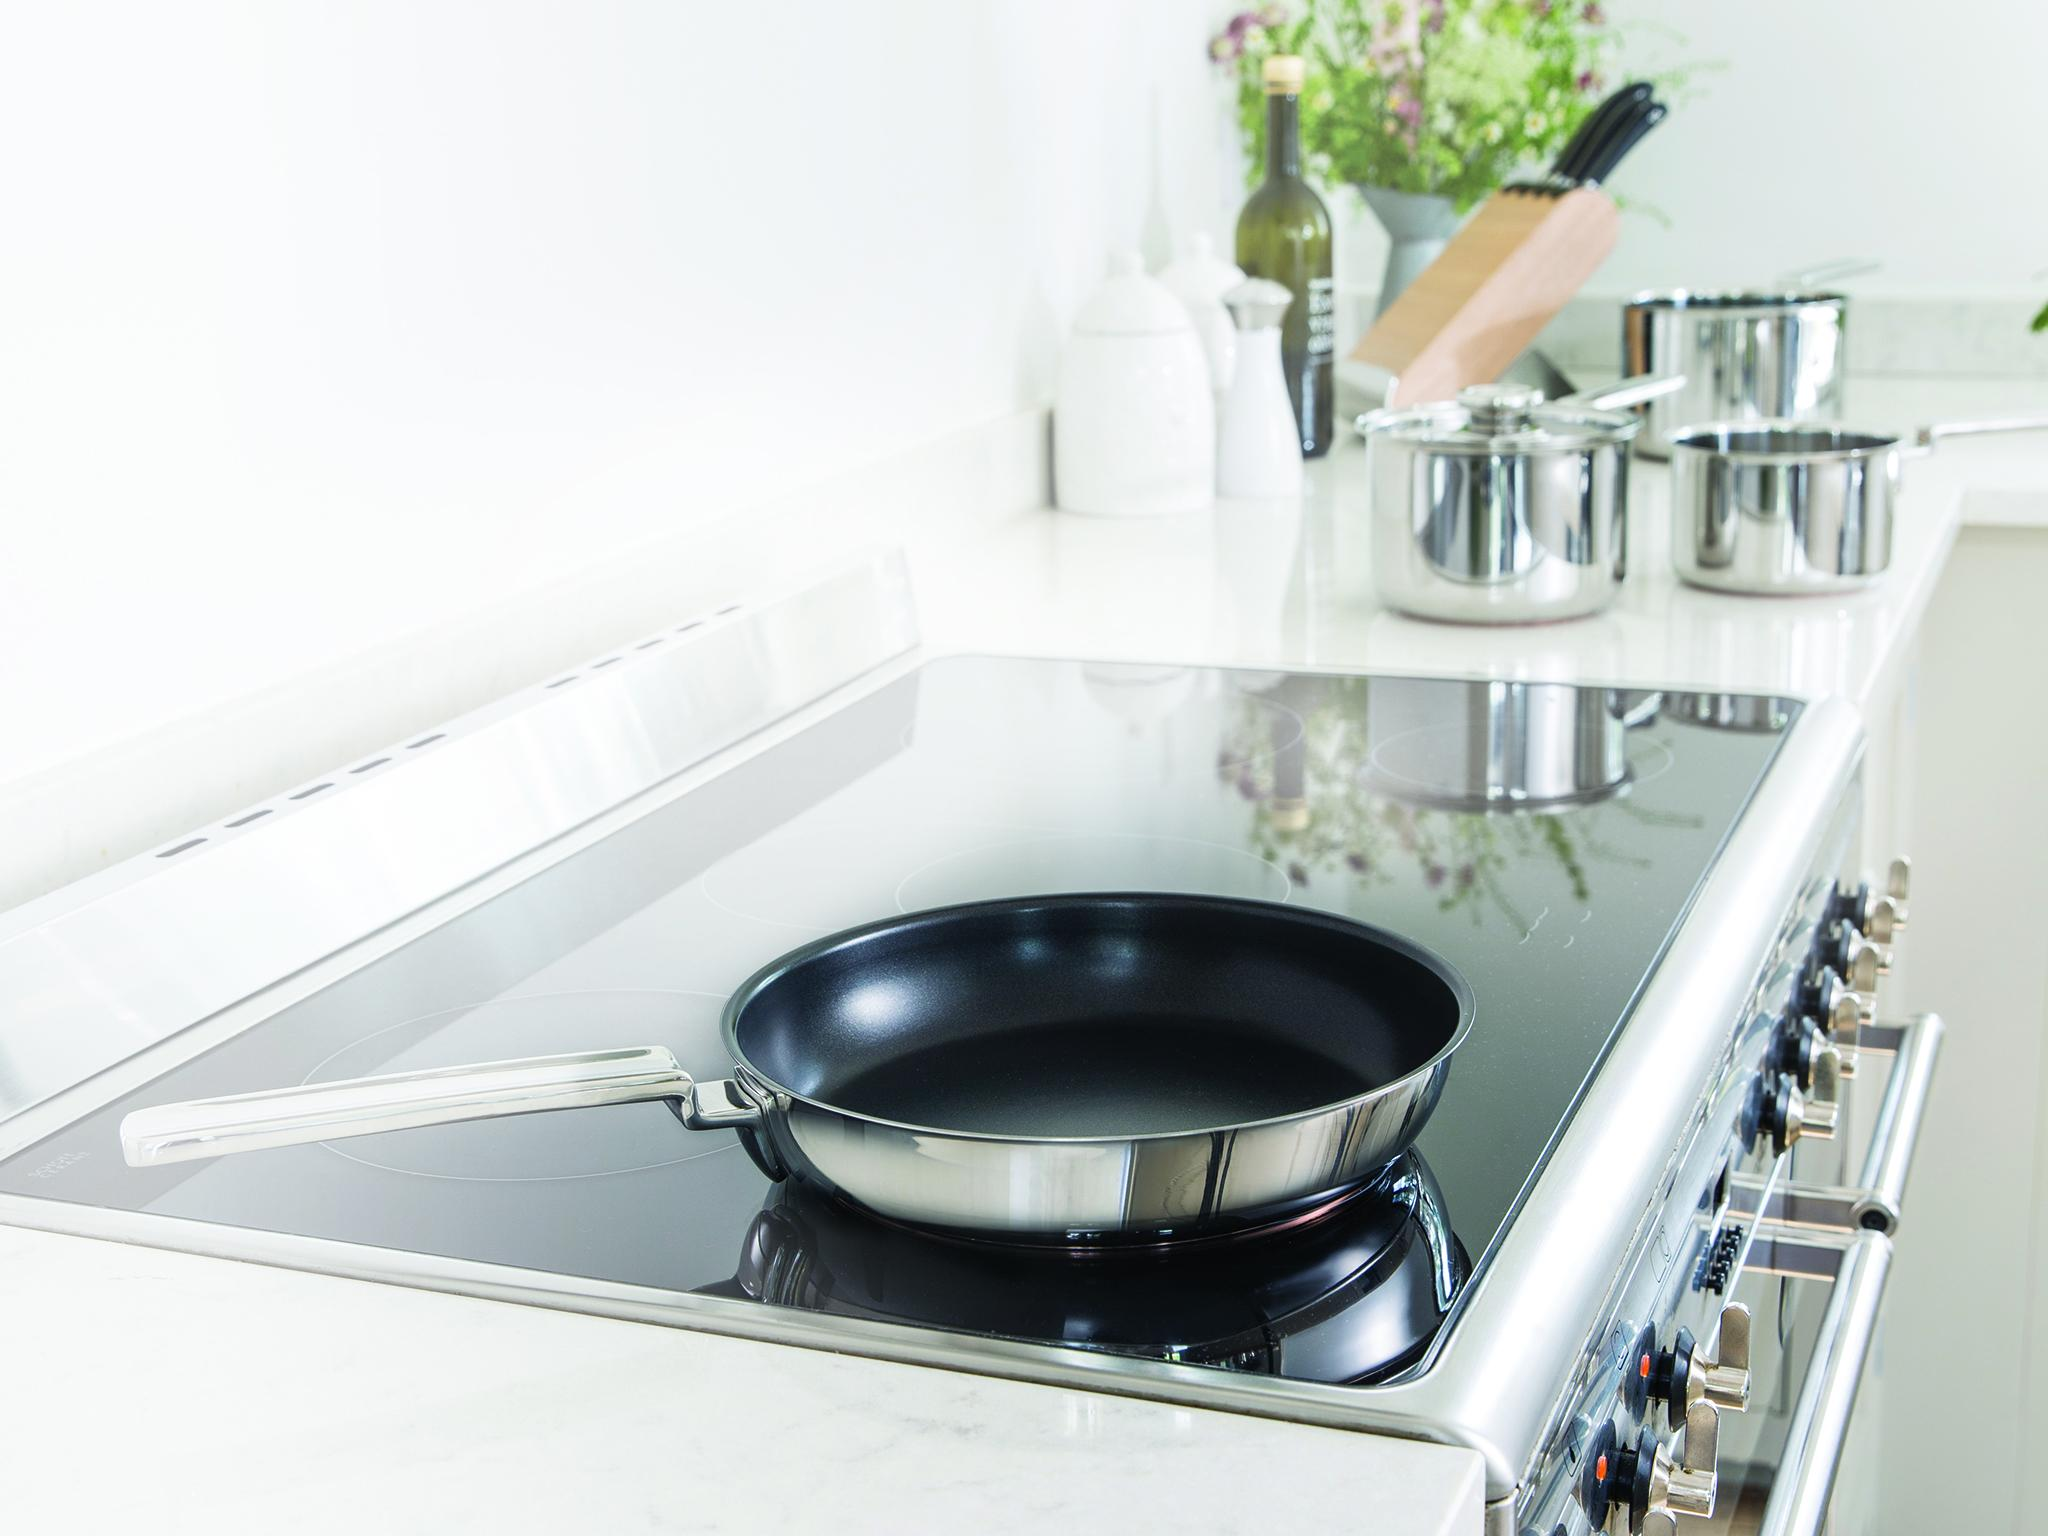 Best non stick frying pan: A pan perfect for eggs, meat, fish and